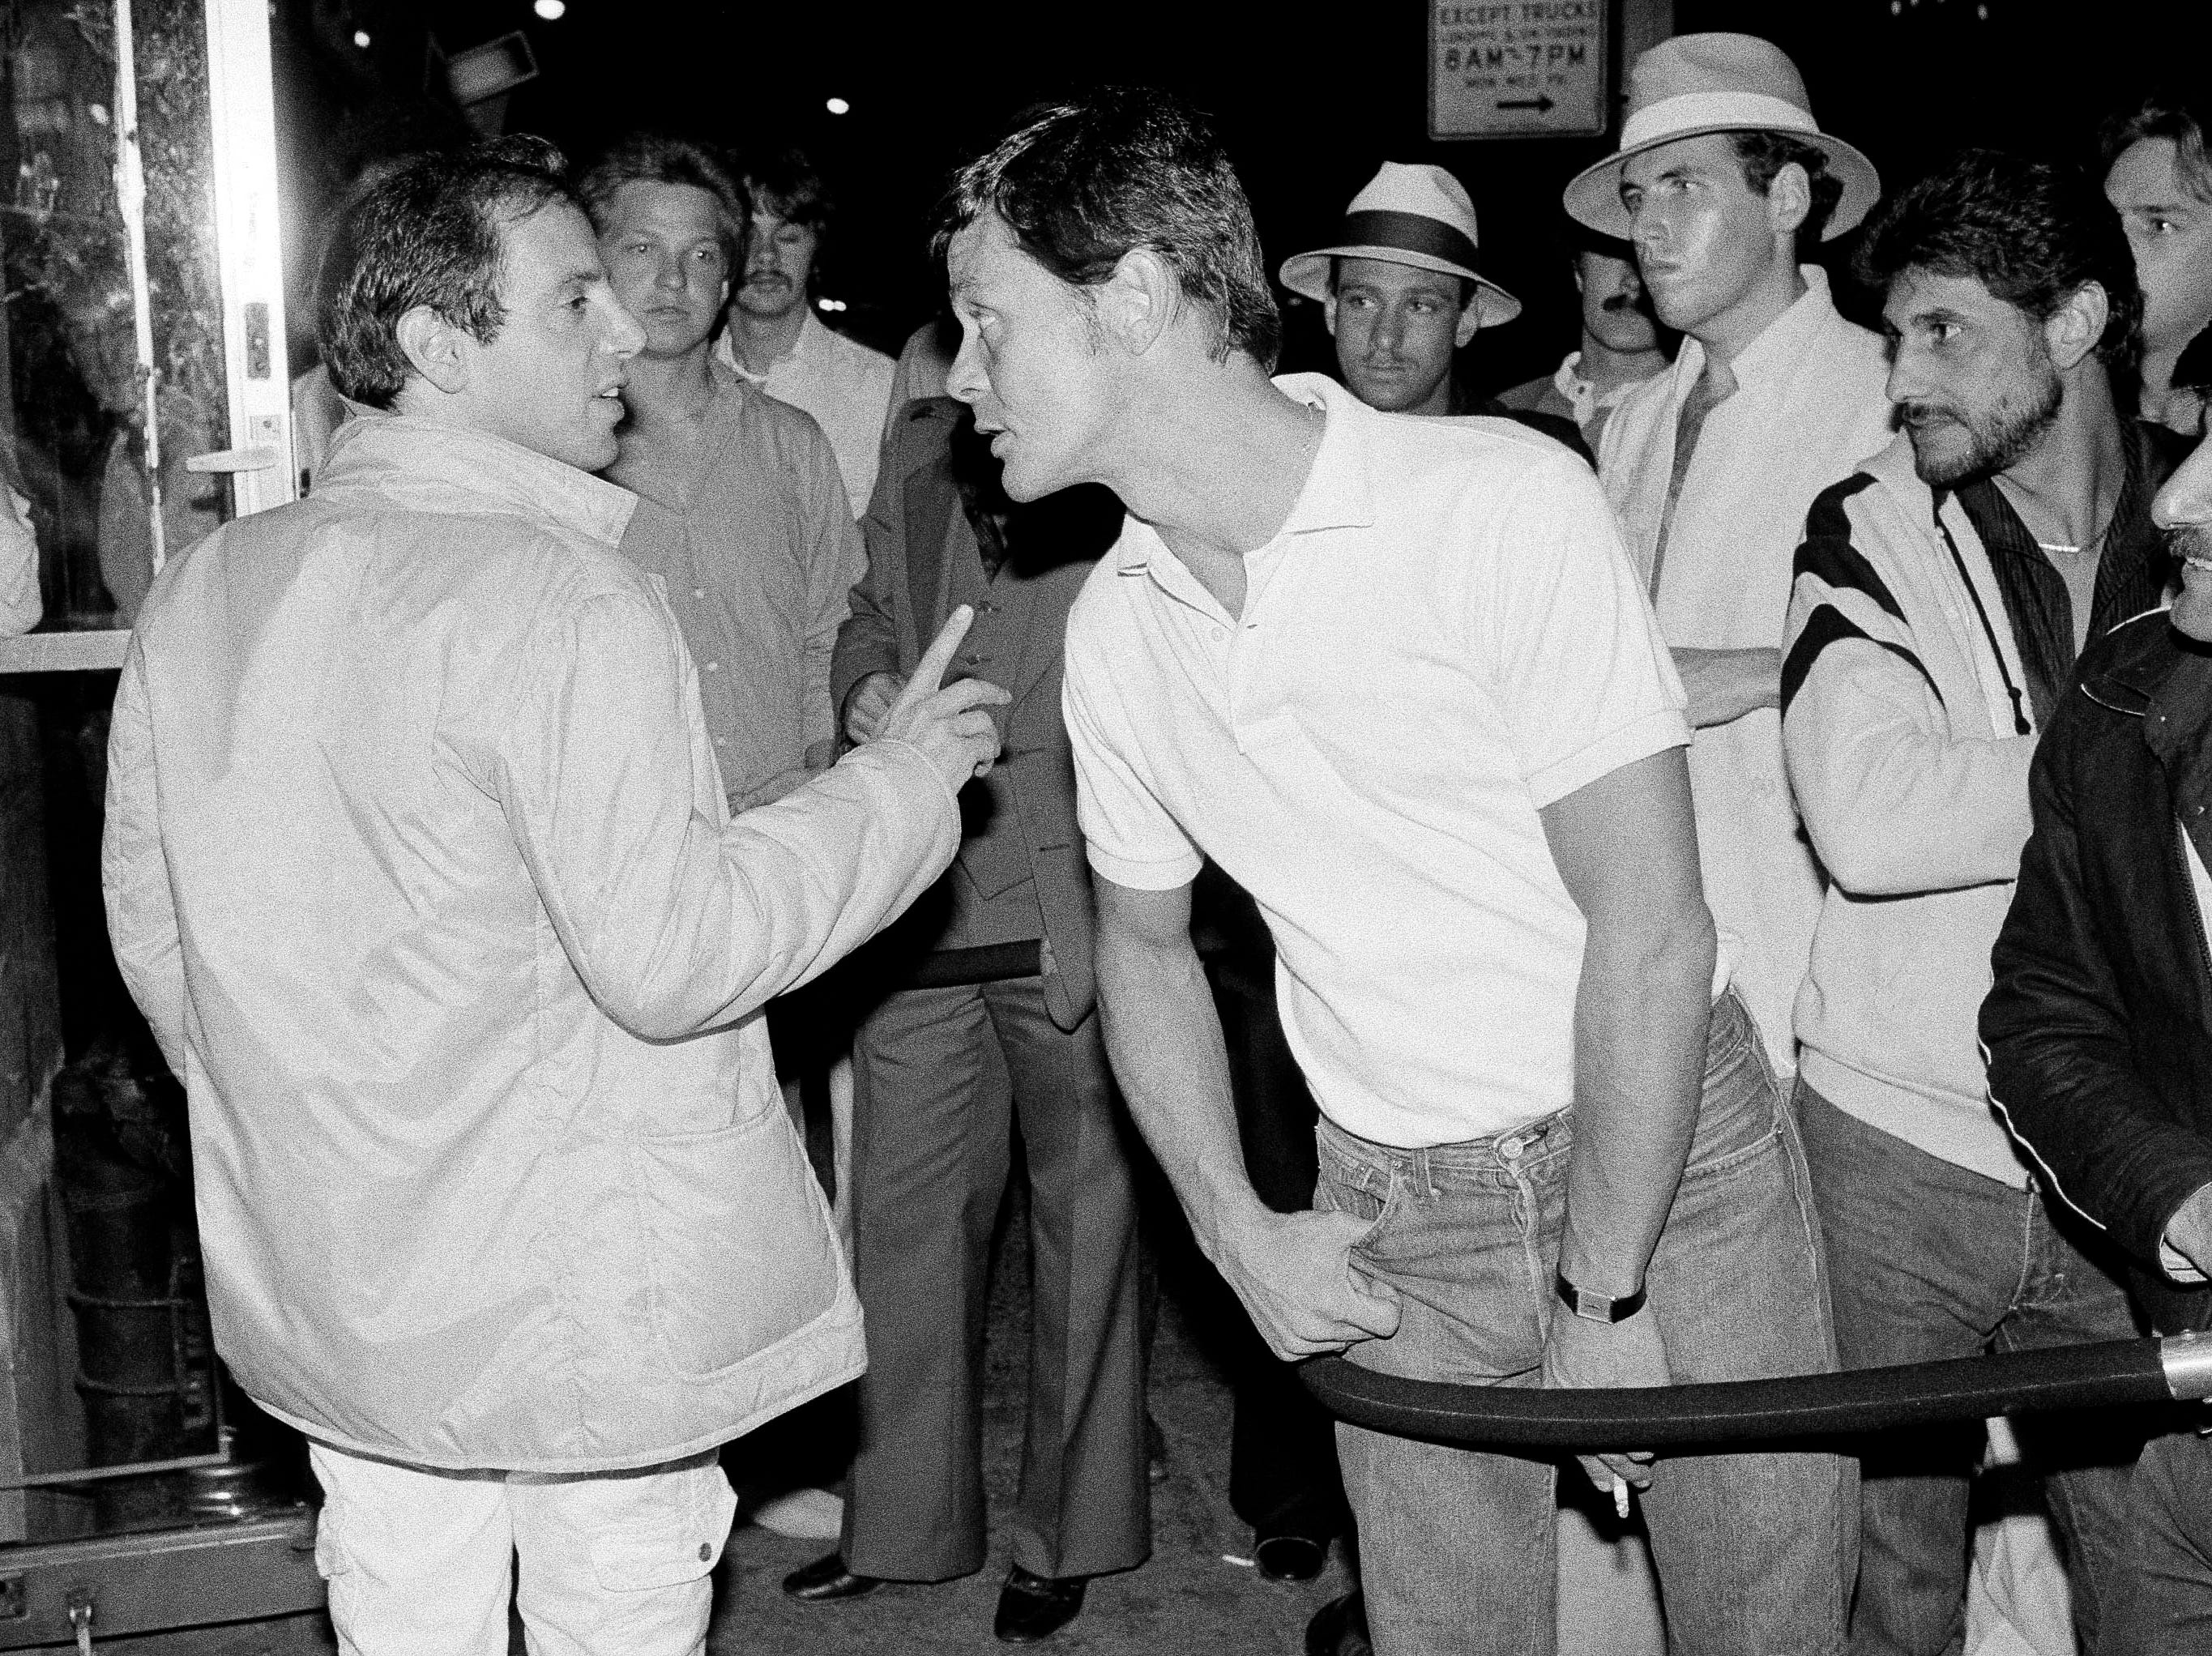 Studio 54 owner Steve Rubell, left, works the line at the door outside the disco, June 26, 1979.